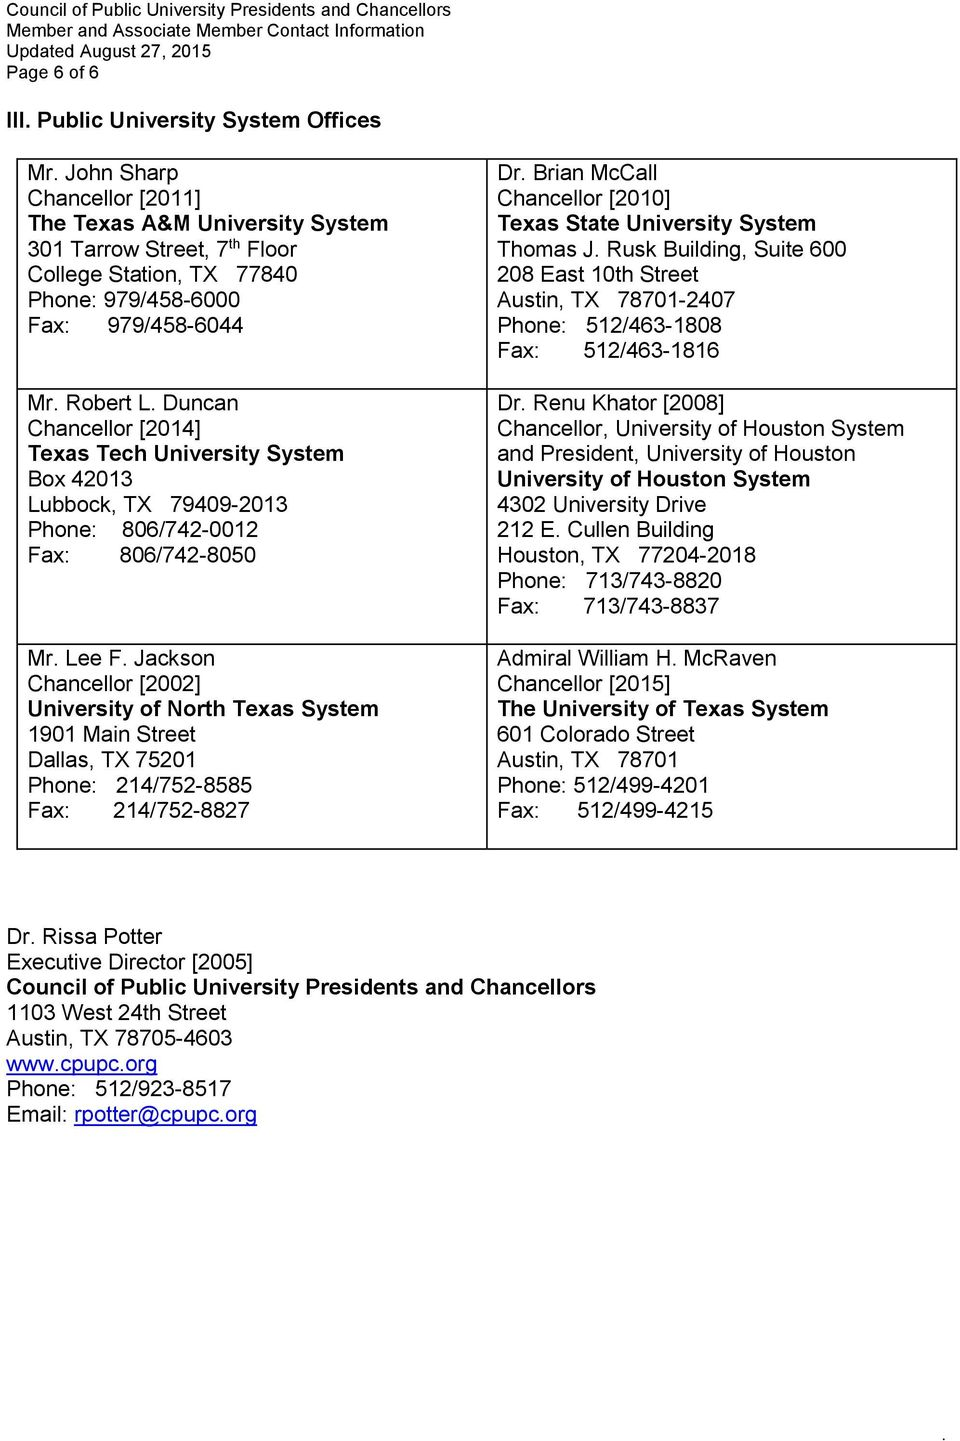 North Texas System 1901 Main Street Dallas, TX 75201 Phone: 214/752-8585 Fax: 214/752-8827 Dr Brian McCall Chancellor [2010] Texas State University System Thomas J Rusk Building, Suite 600 208 East